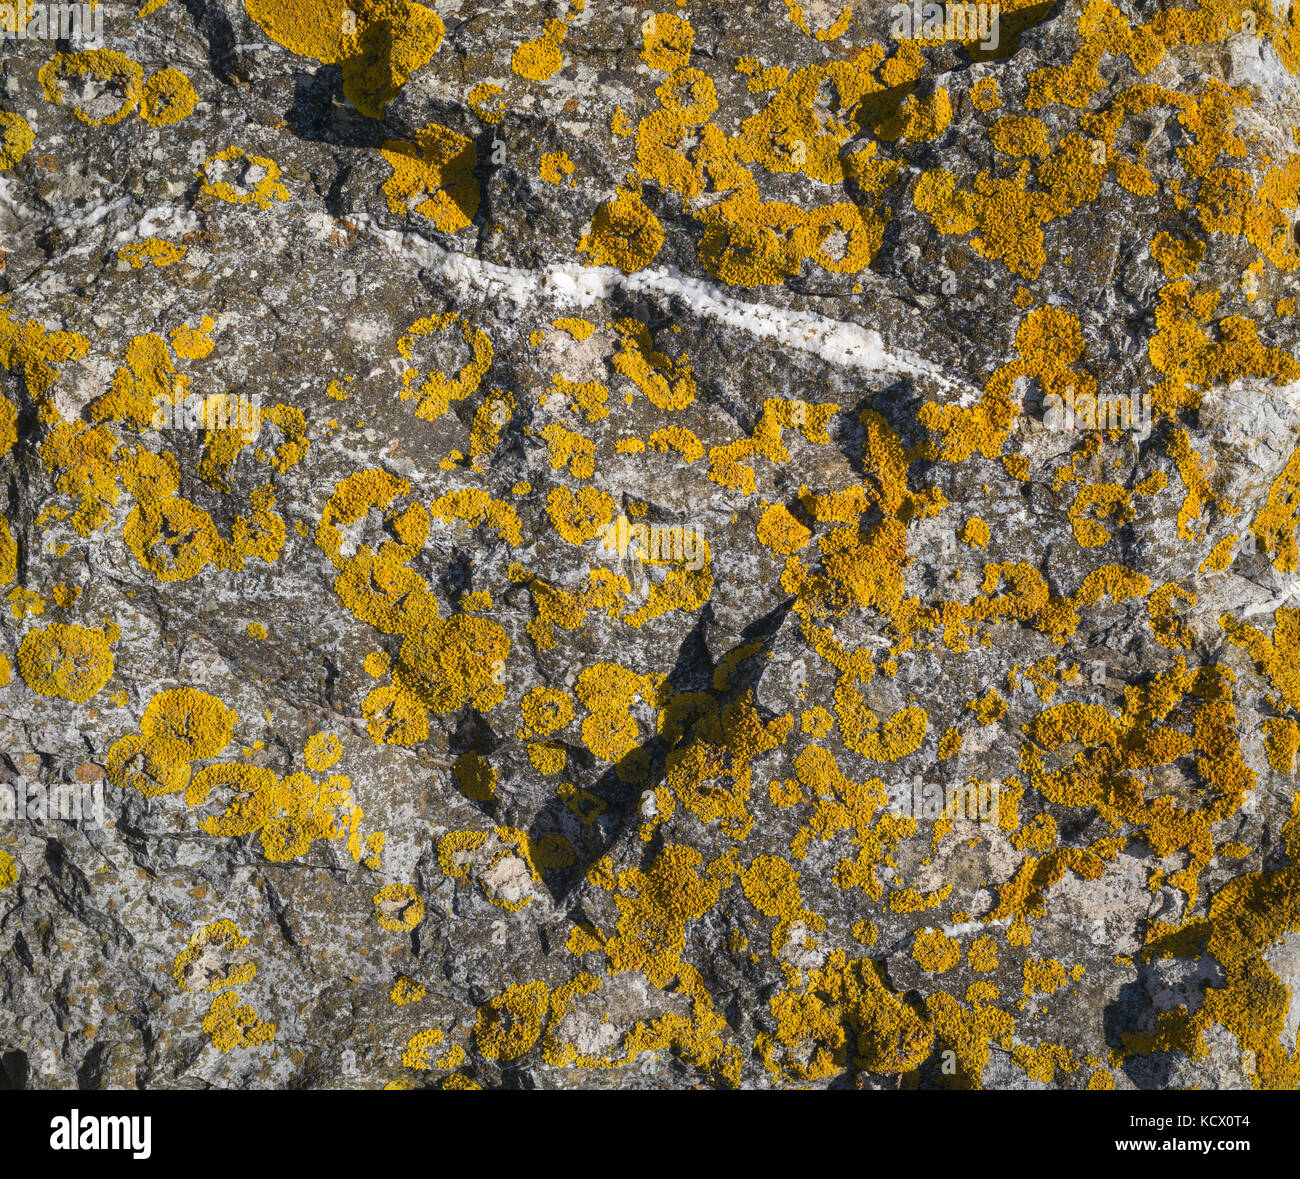 Sedimentary rock with quartz intrusion and yellow lichen growth, Cardiff Bay, Cardiff, UK - Stock Image